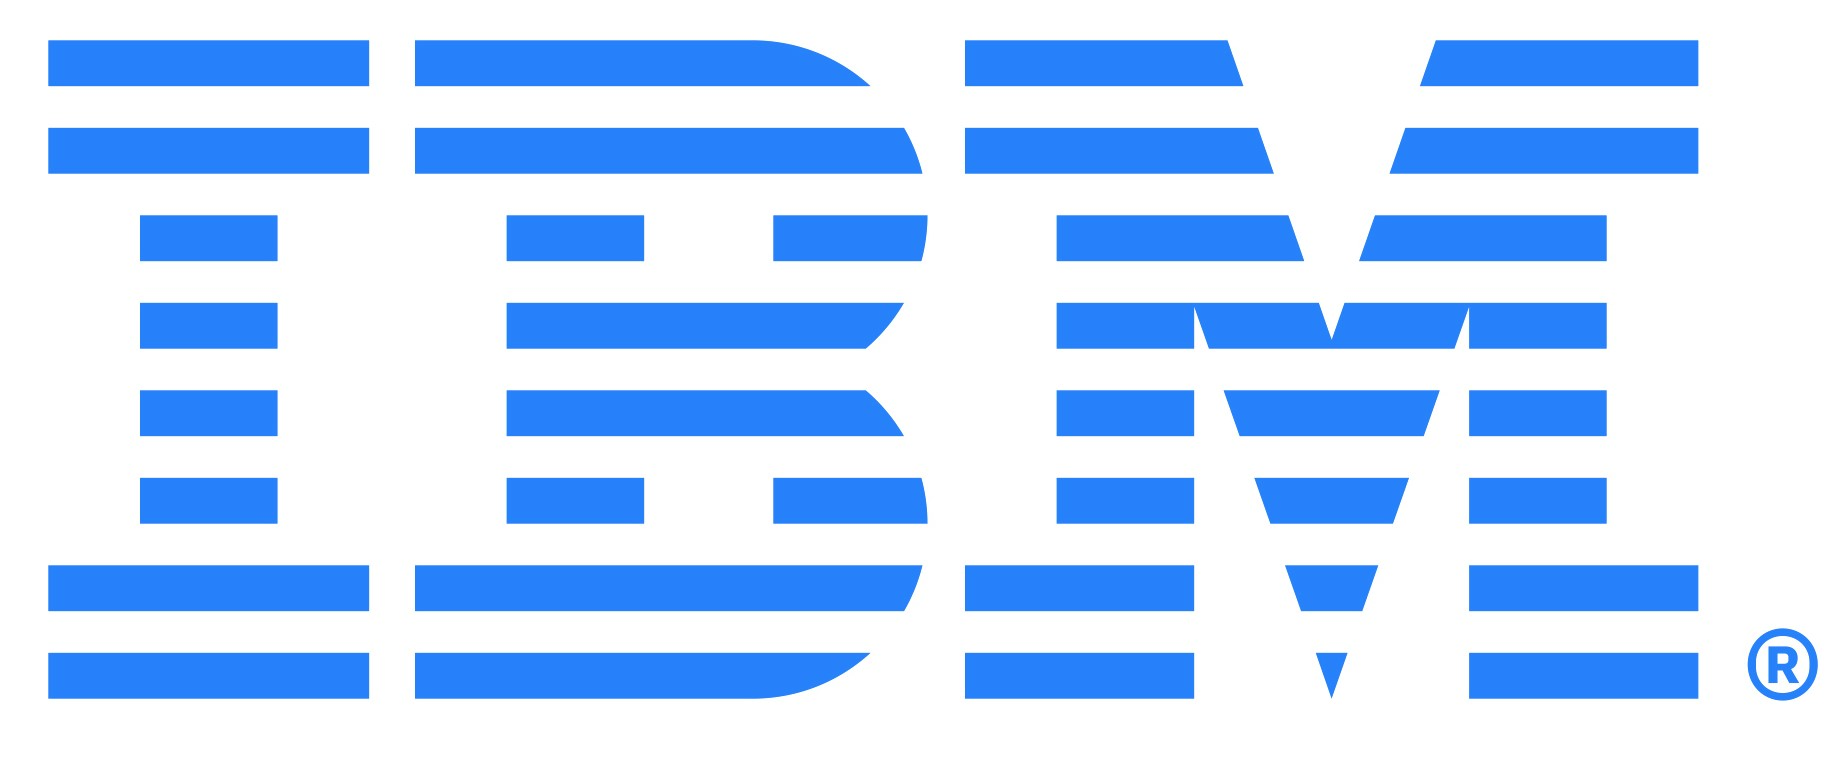 IBM_logo_blue60_CMYK